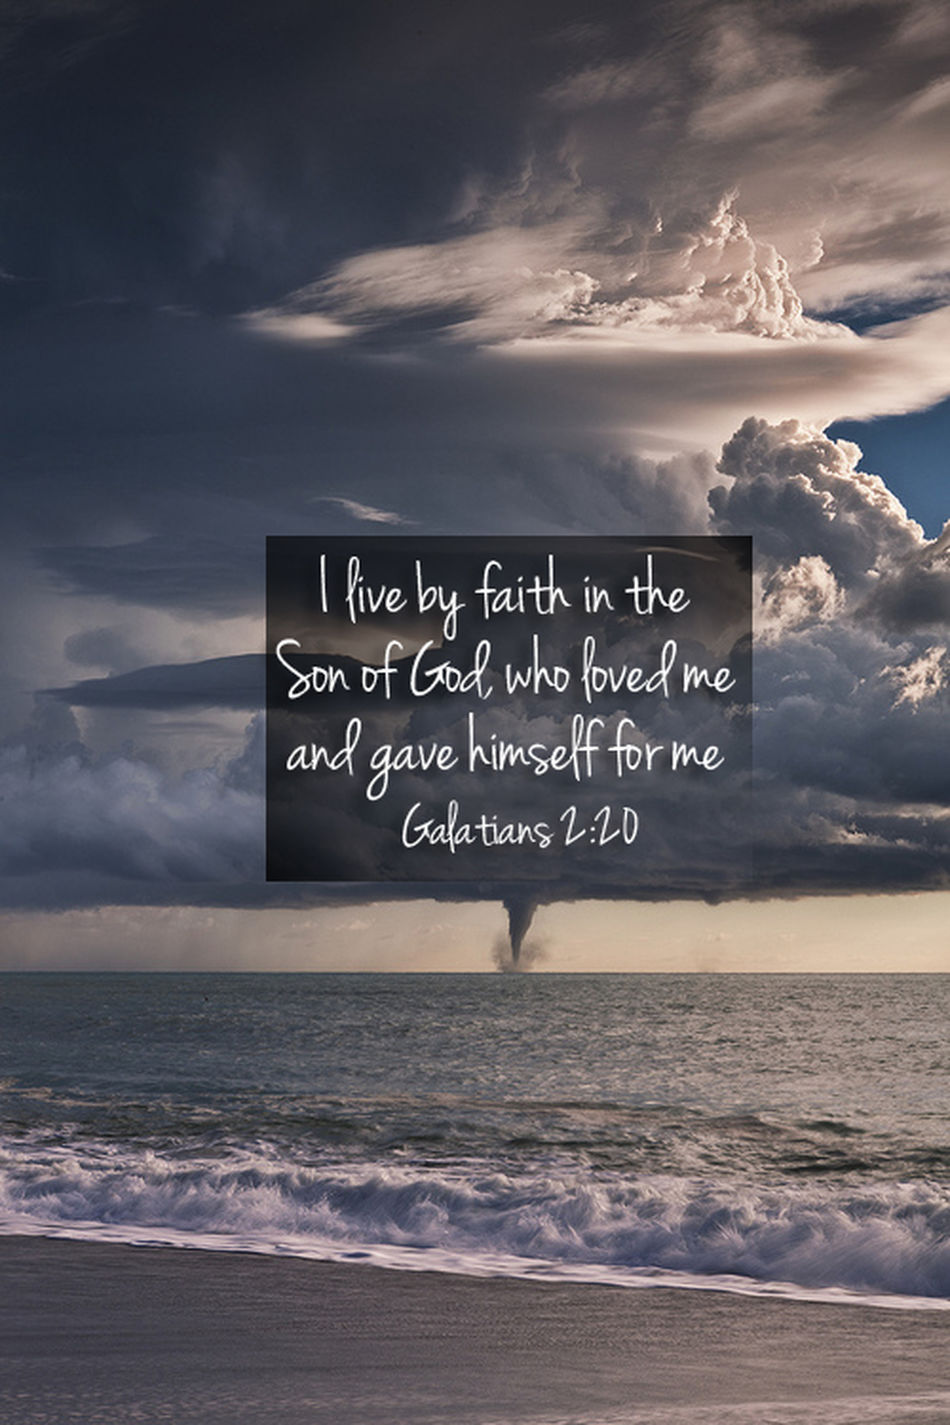 Good Morning My Father, The Son & Holy Spirit!